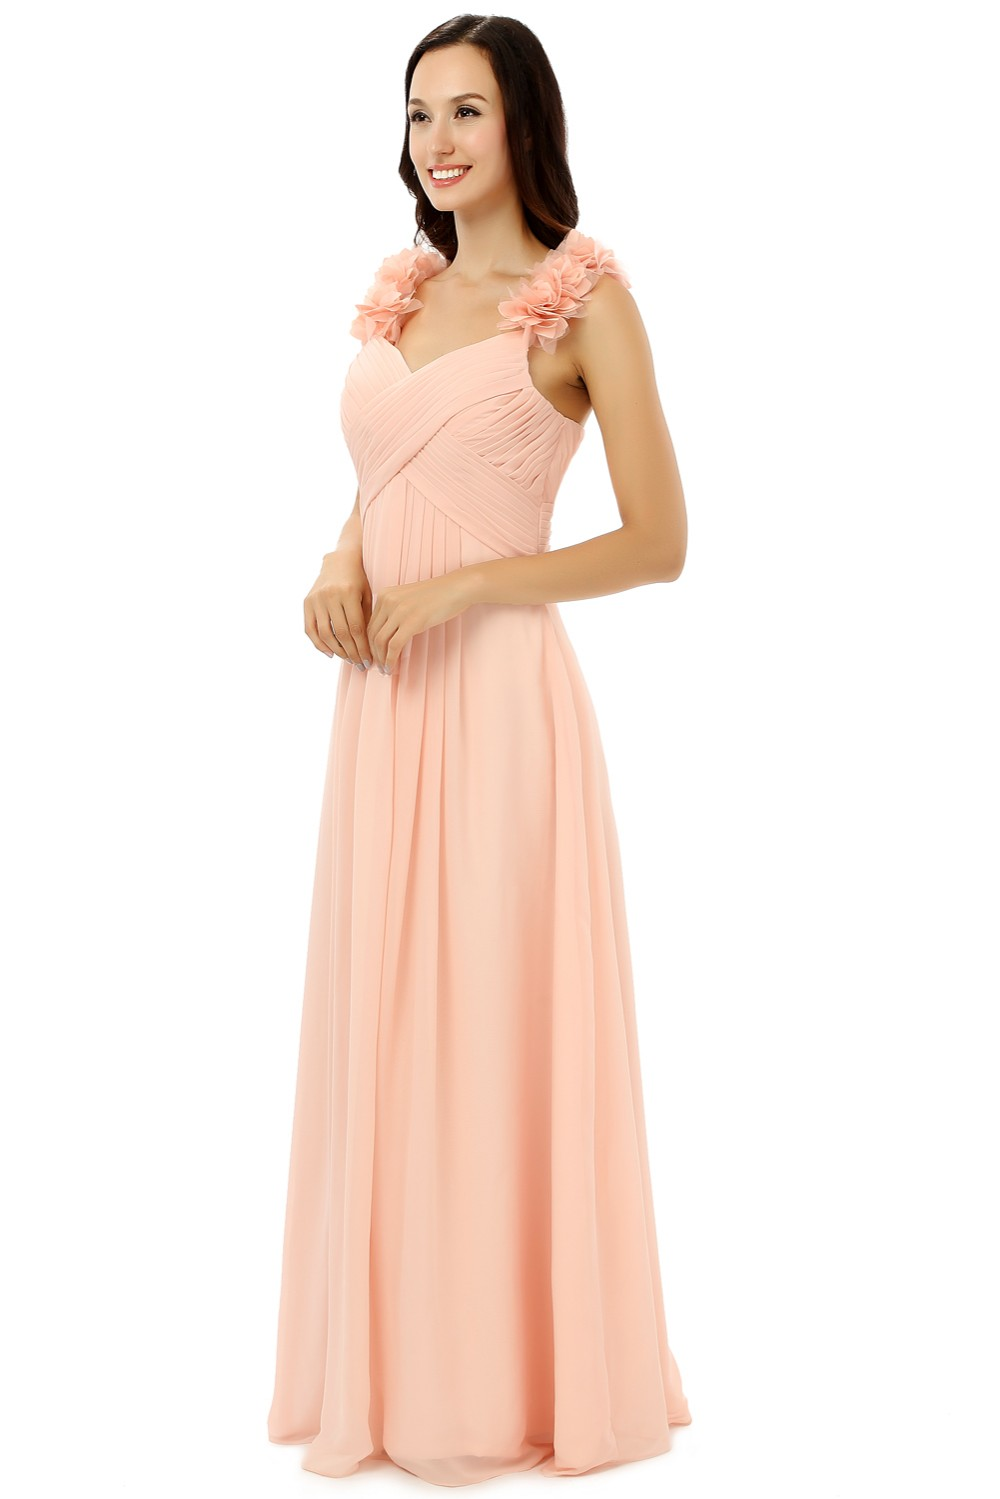 Cheap bridesmaid dresses under 50 gallery braidsmaid dress new 2018 cheap bridesmaid dresses under 50 a line spaghetti straps new 2018 cheap bridesmaid dresses ombrellifo Images